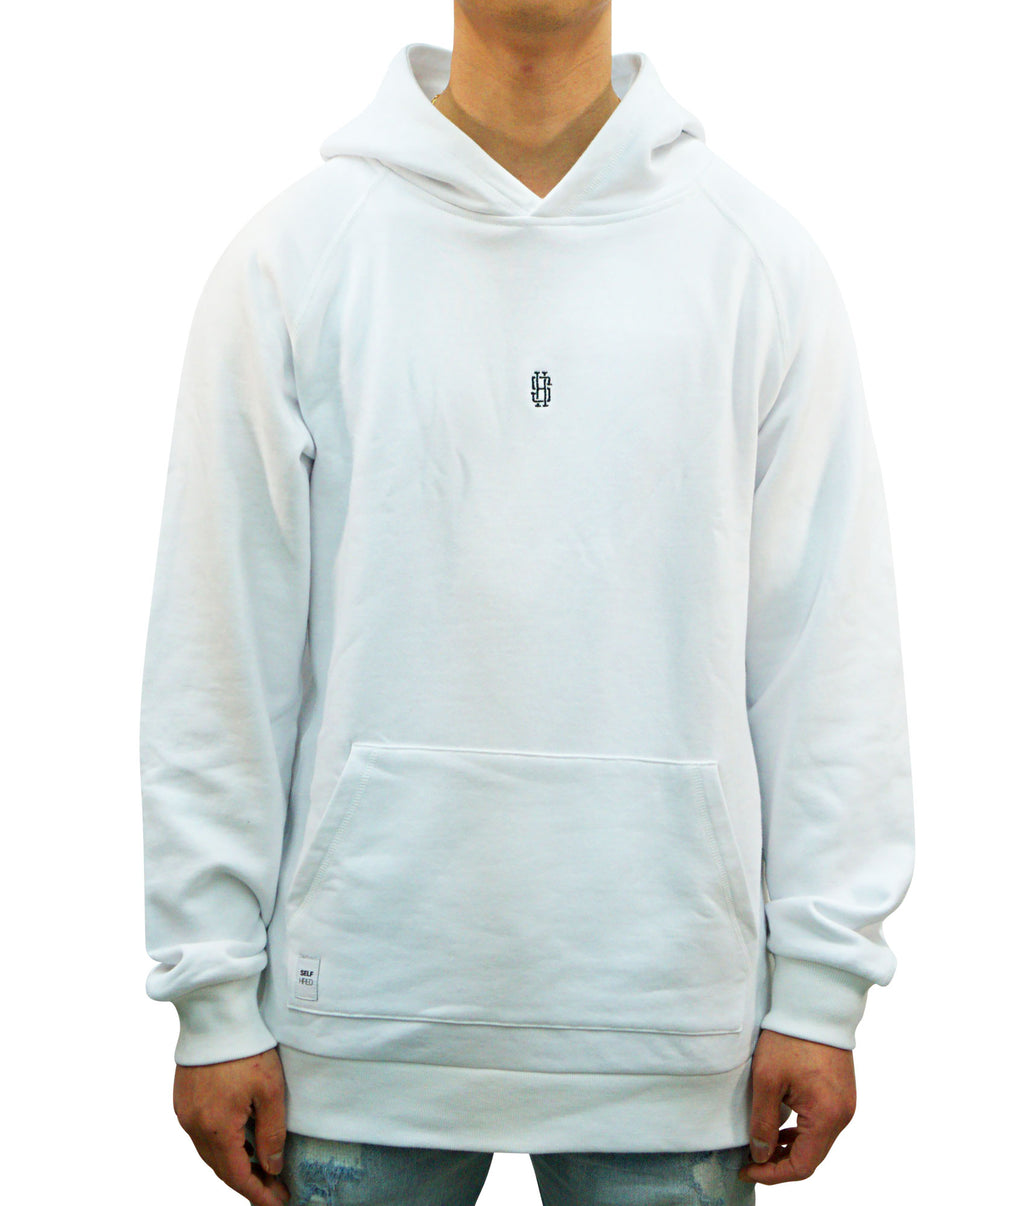 1.X Hooded Pullover - White